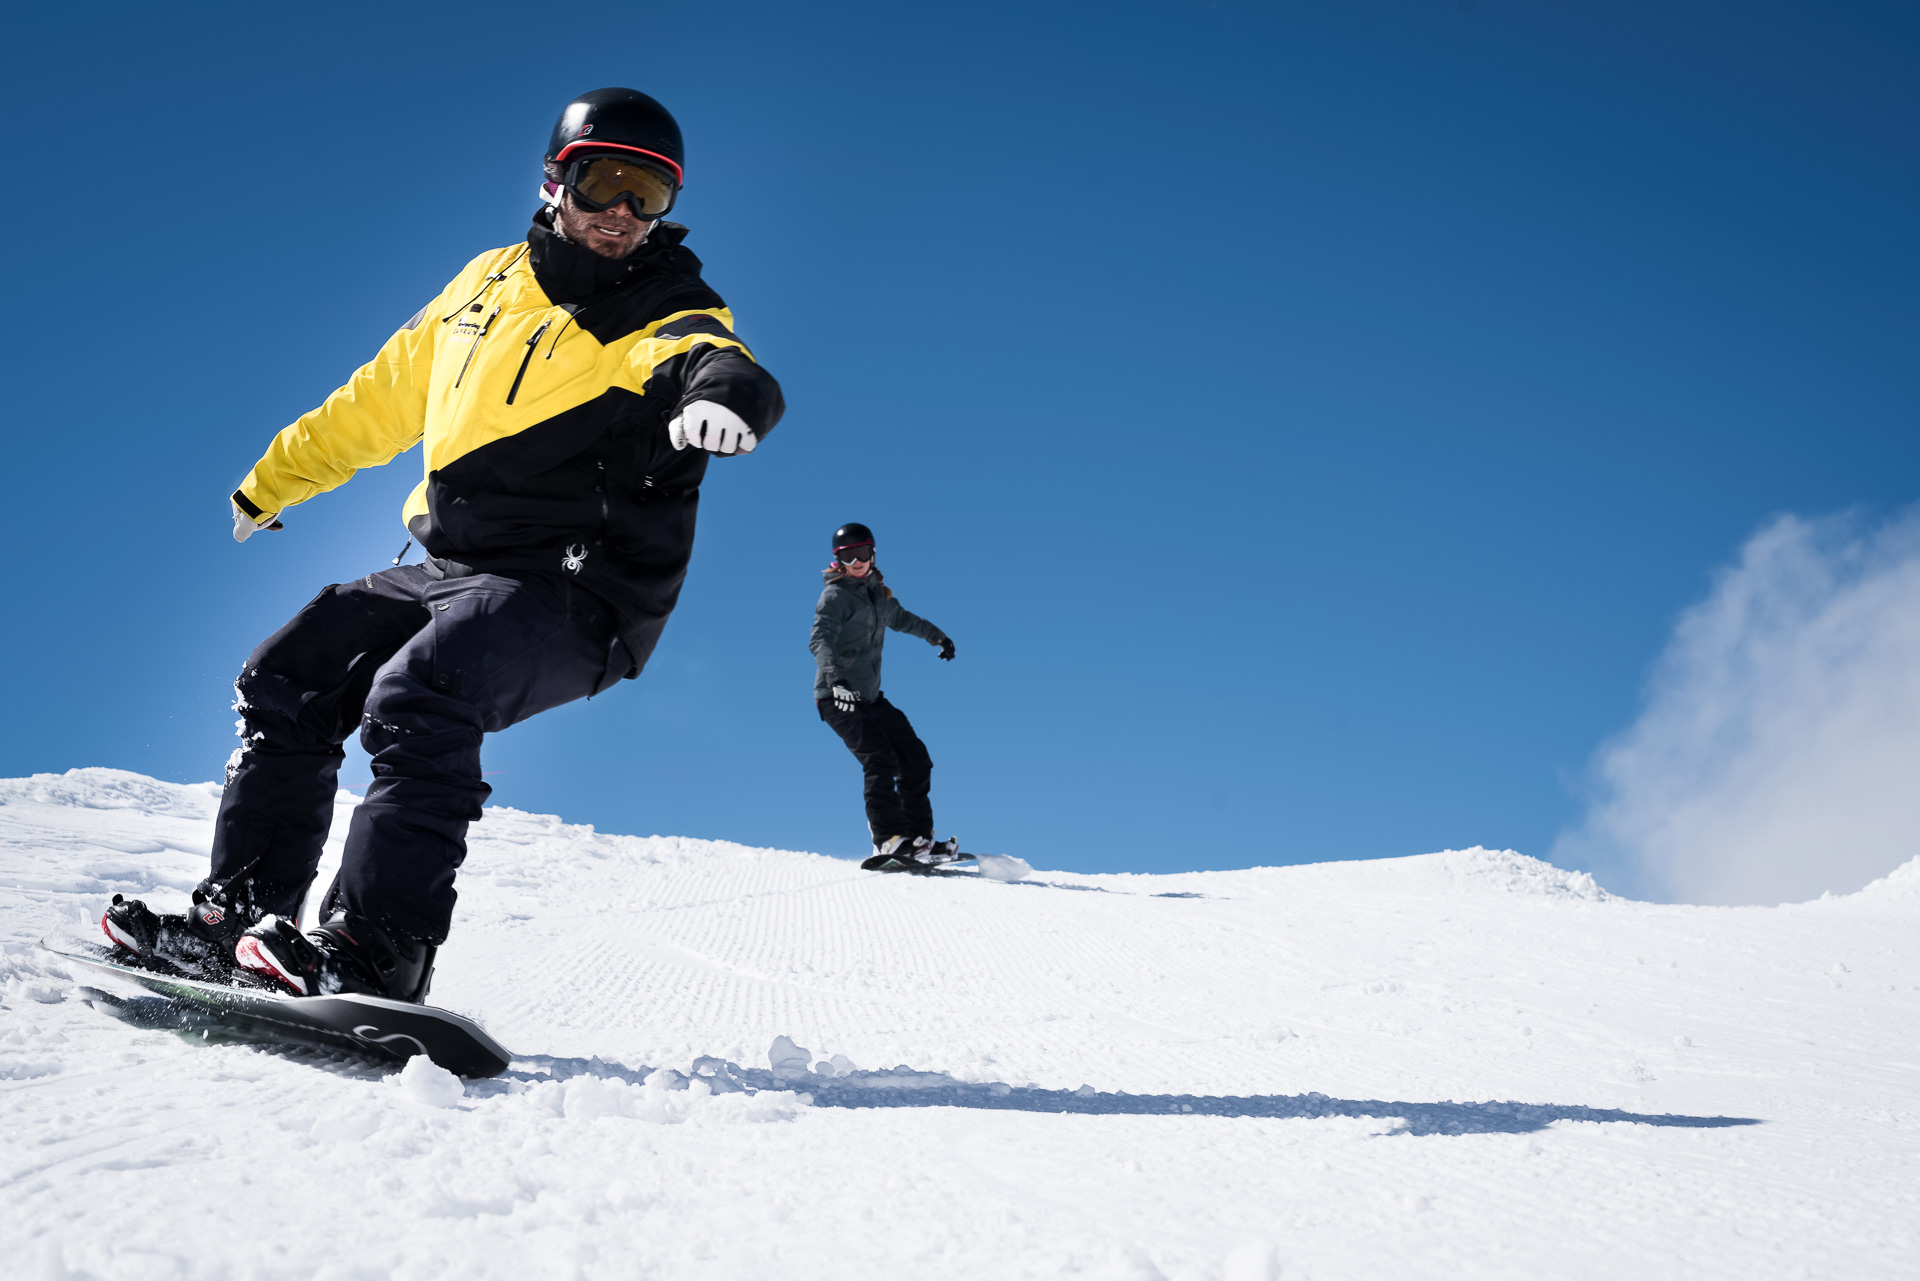 Privat - Snowboard, 1 Tag/Day, 4h